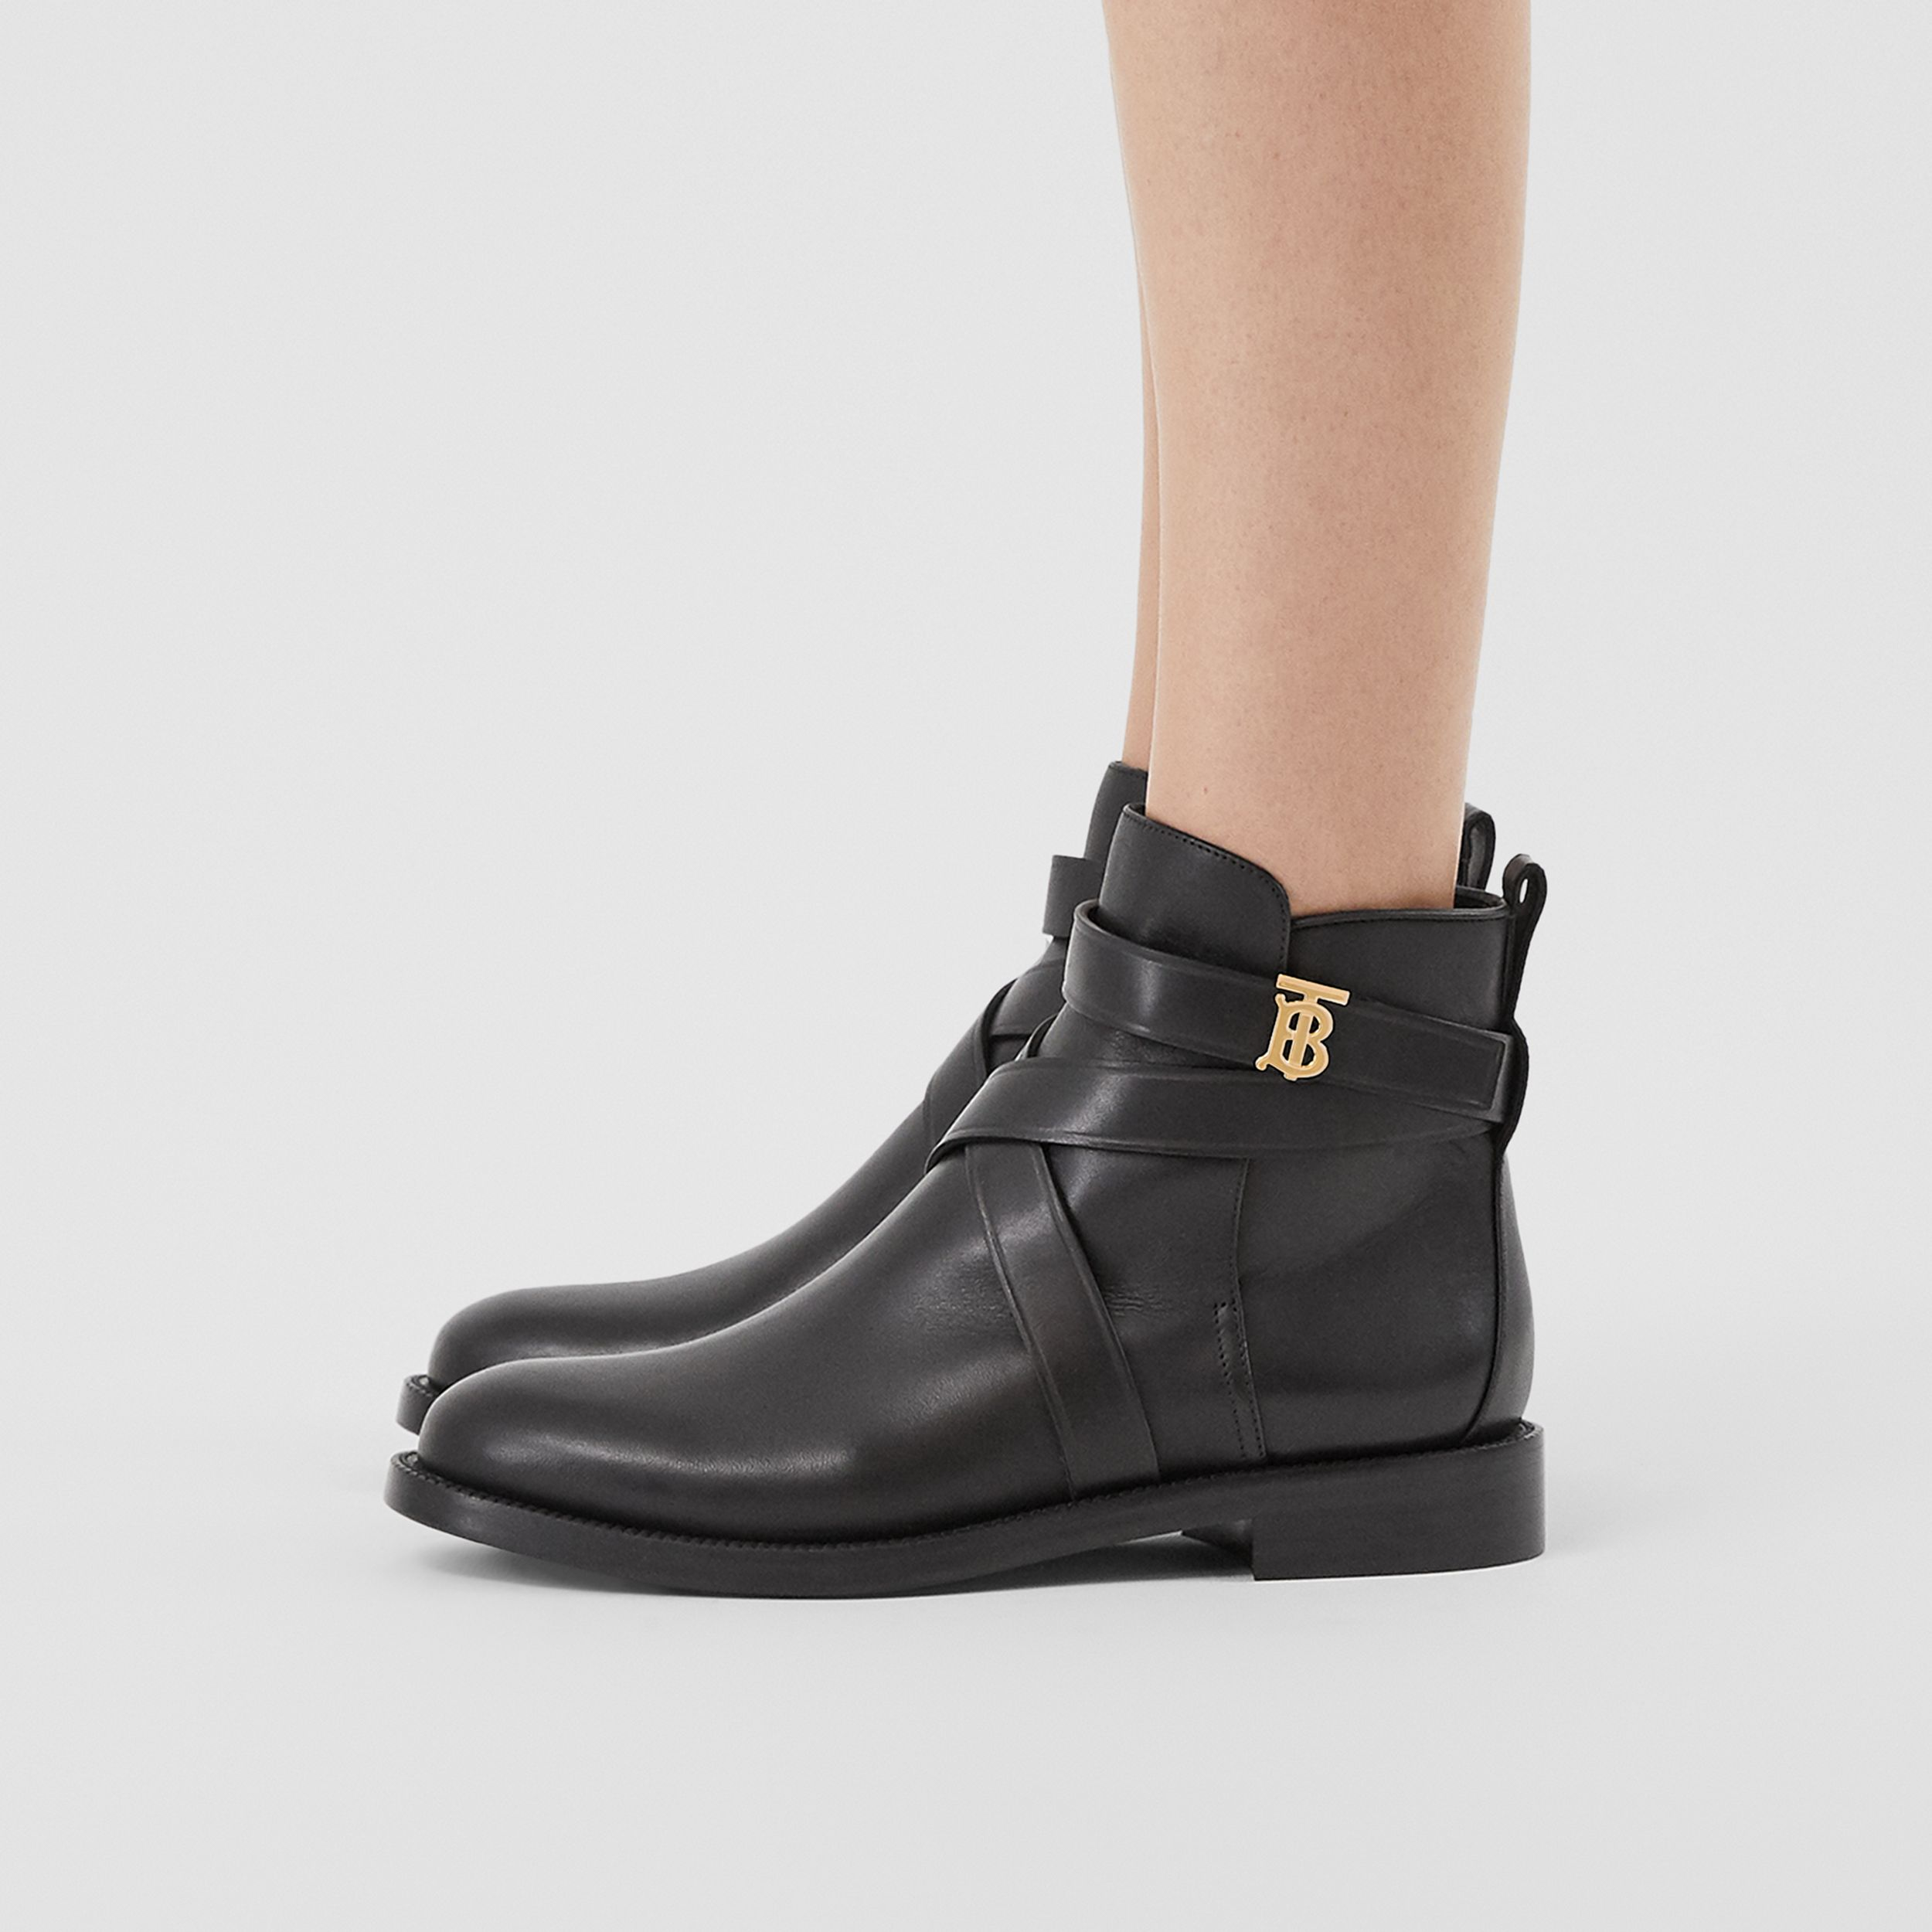 Monogram Motif Leather Ankle Boots in Black - Women | Burberry - 3